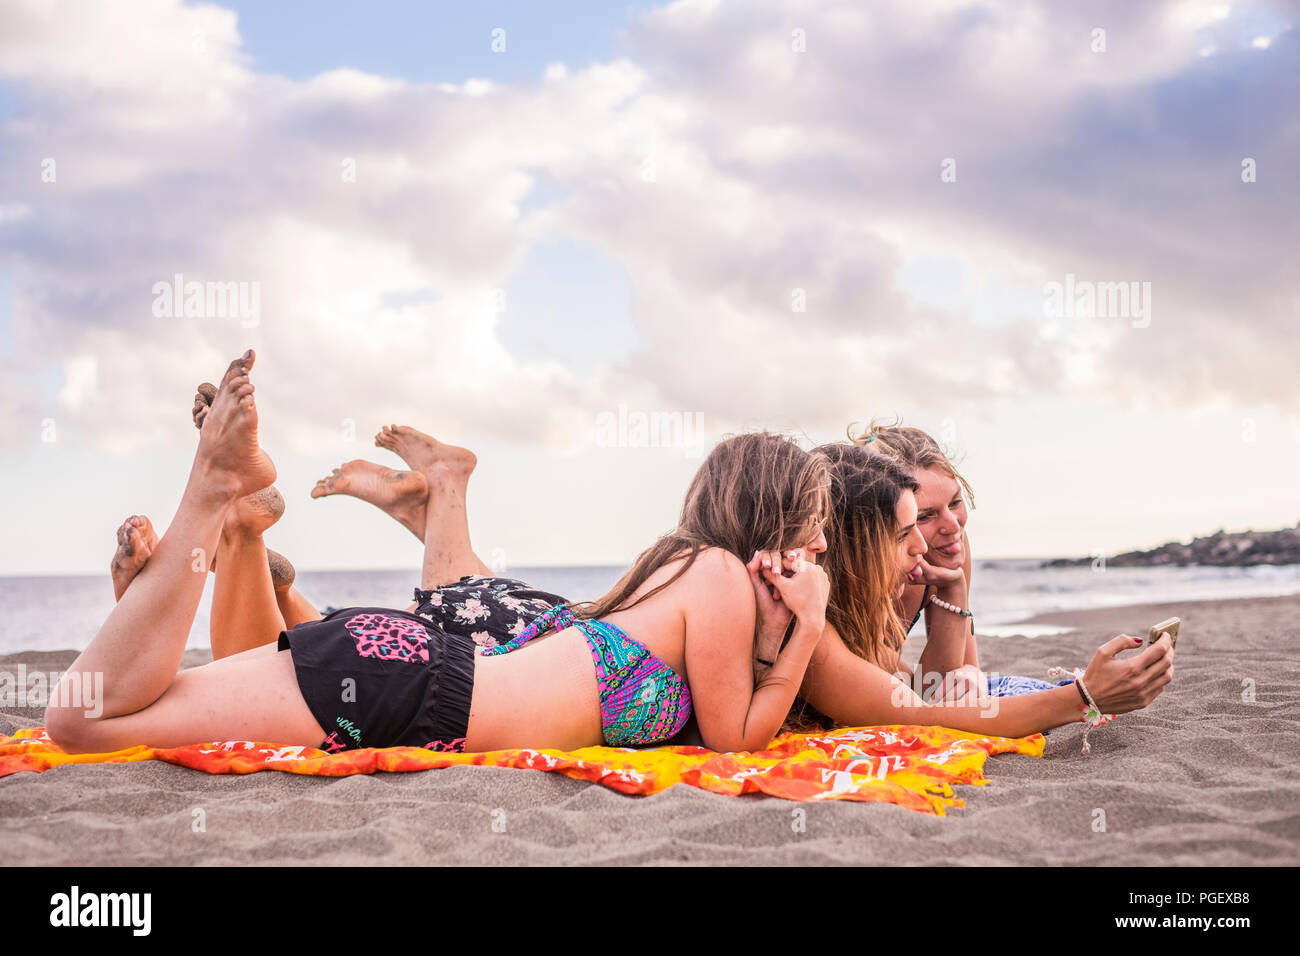 L'été, vacances, congés, de la technologie et de bonheur concept - group of smiling people with sunglasses taking picture with smartphone sur plage. happin Banque D'Images